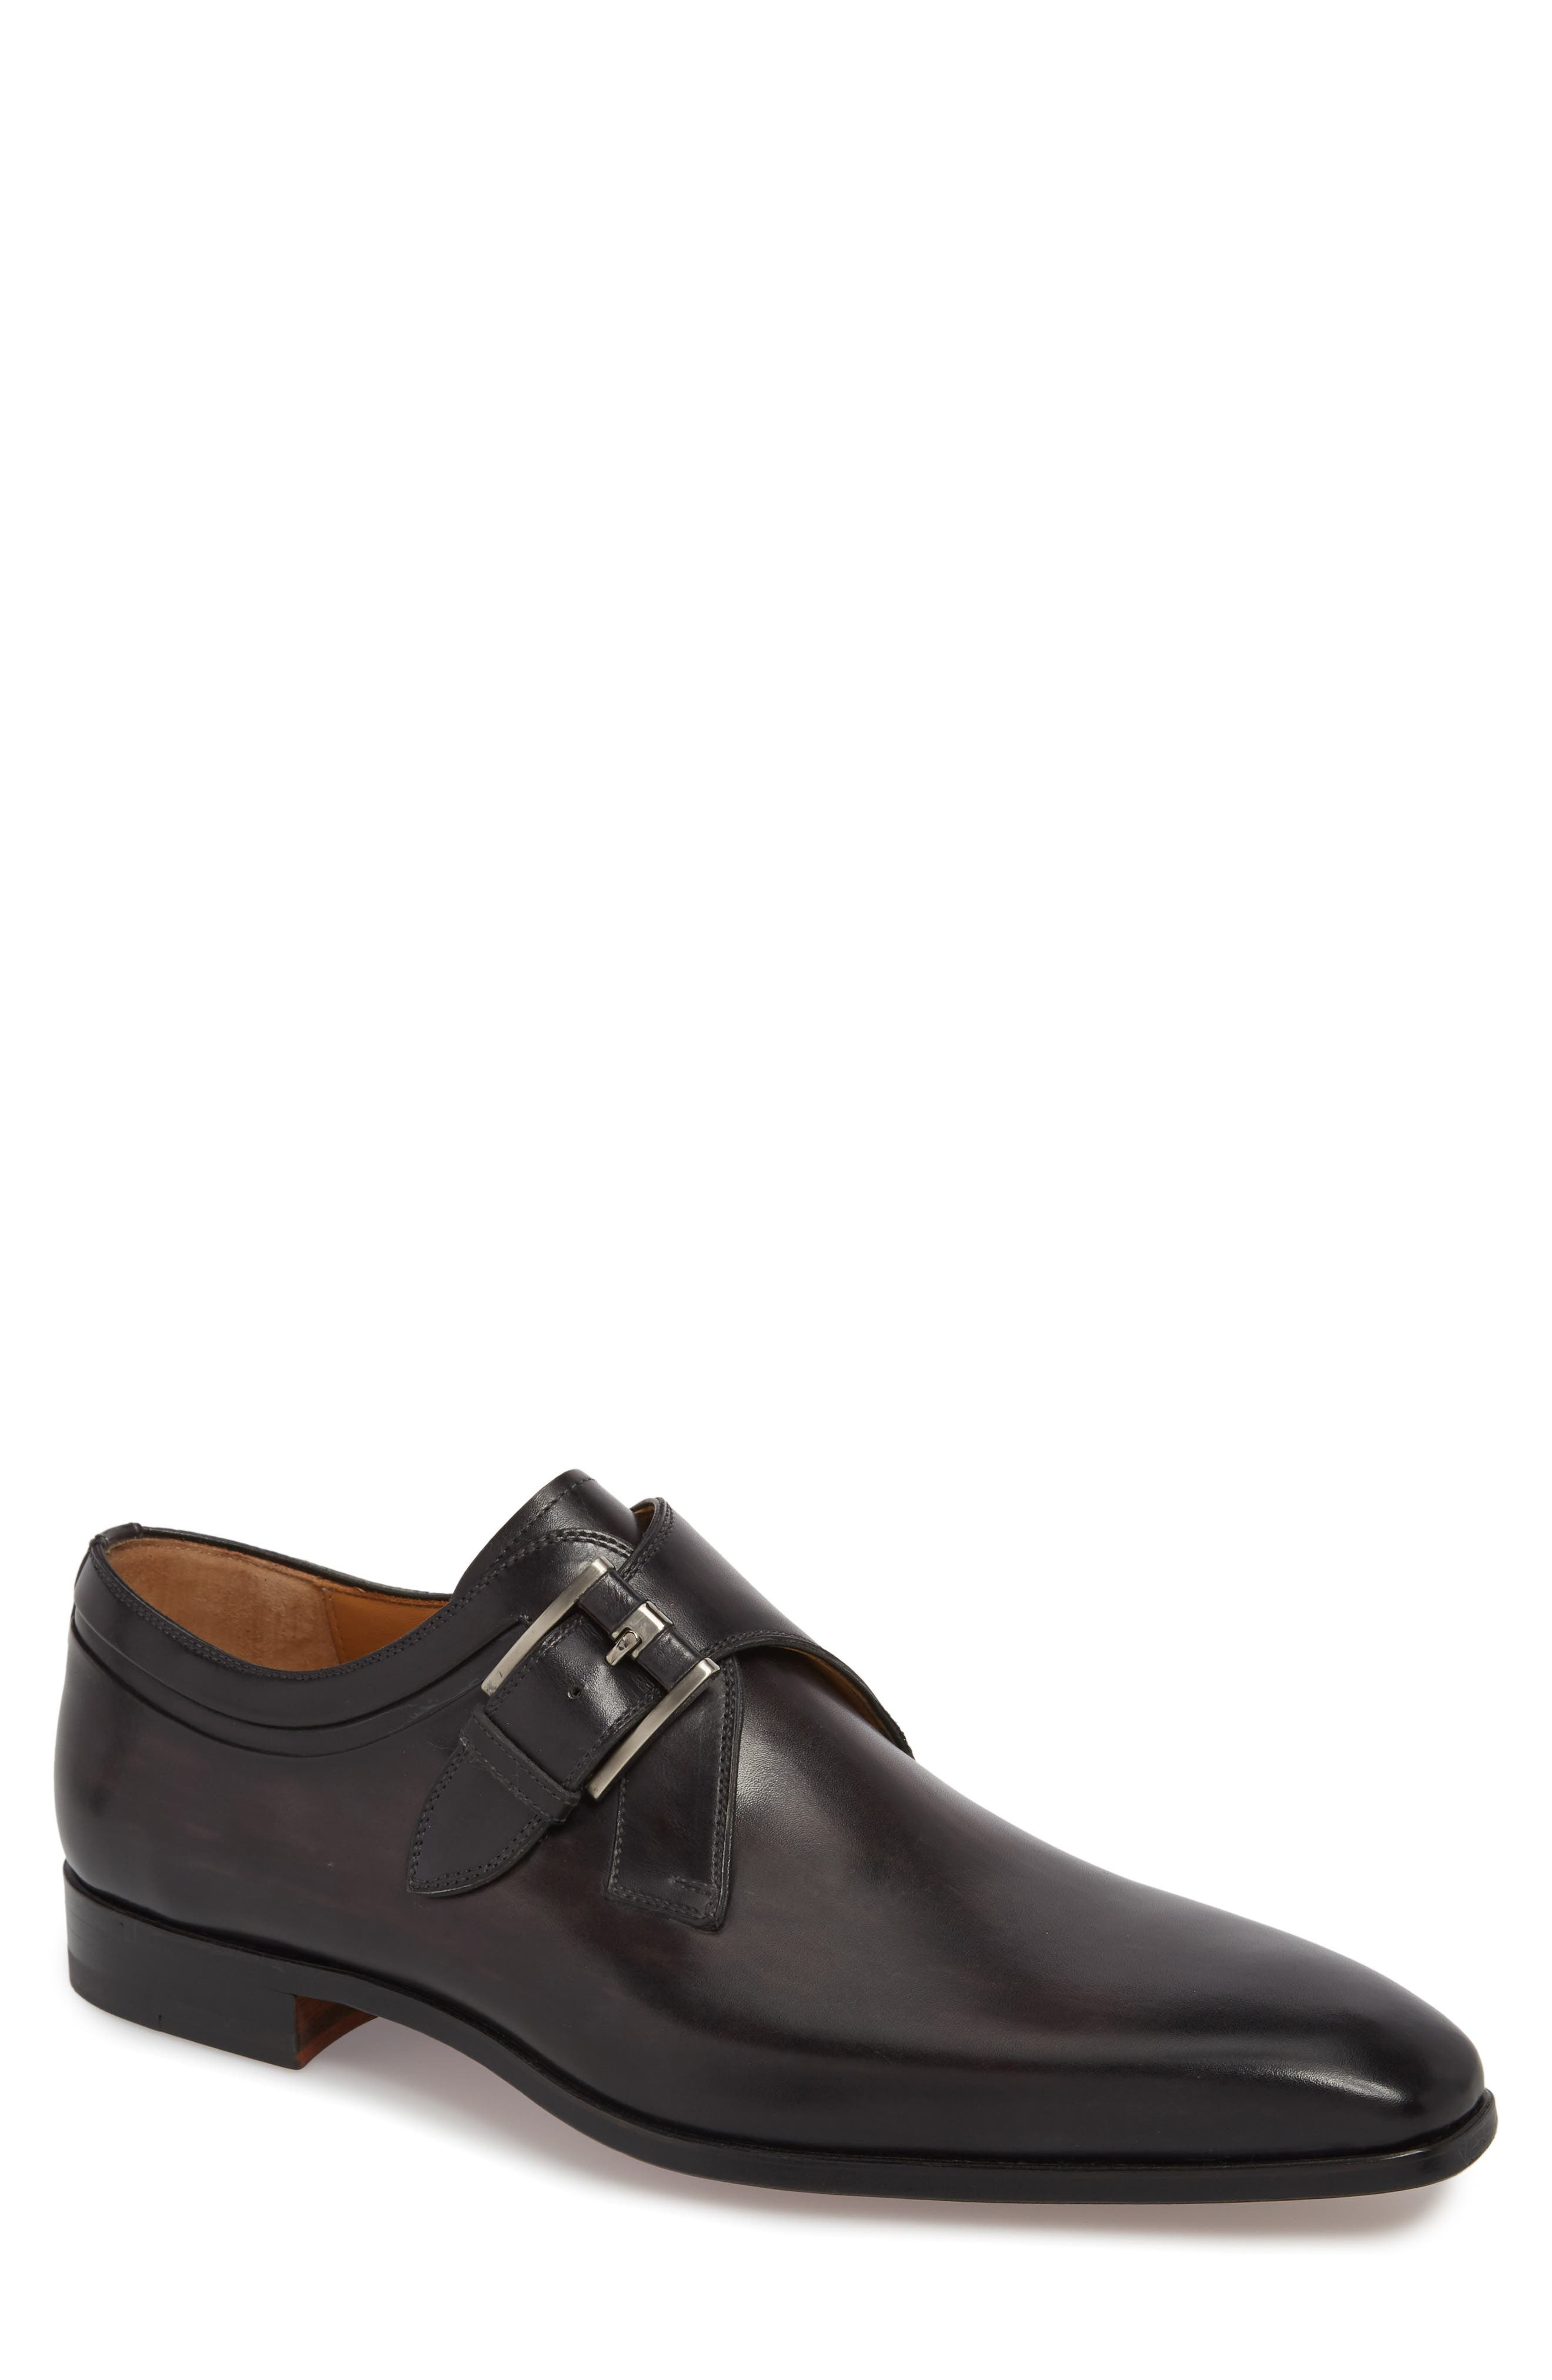 Toma Single Buckle Monk Shoe,                         Main,                         color, 020